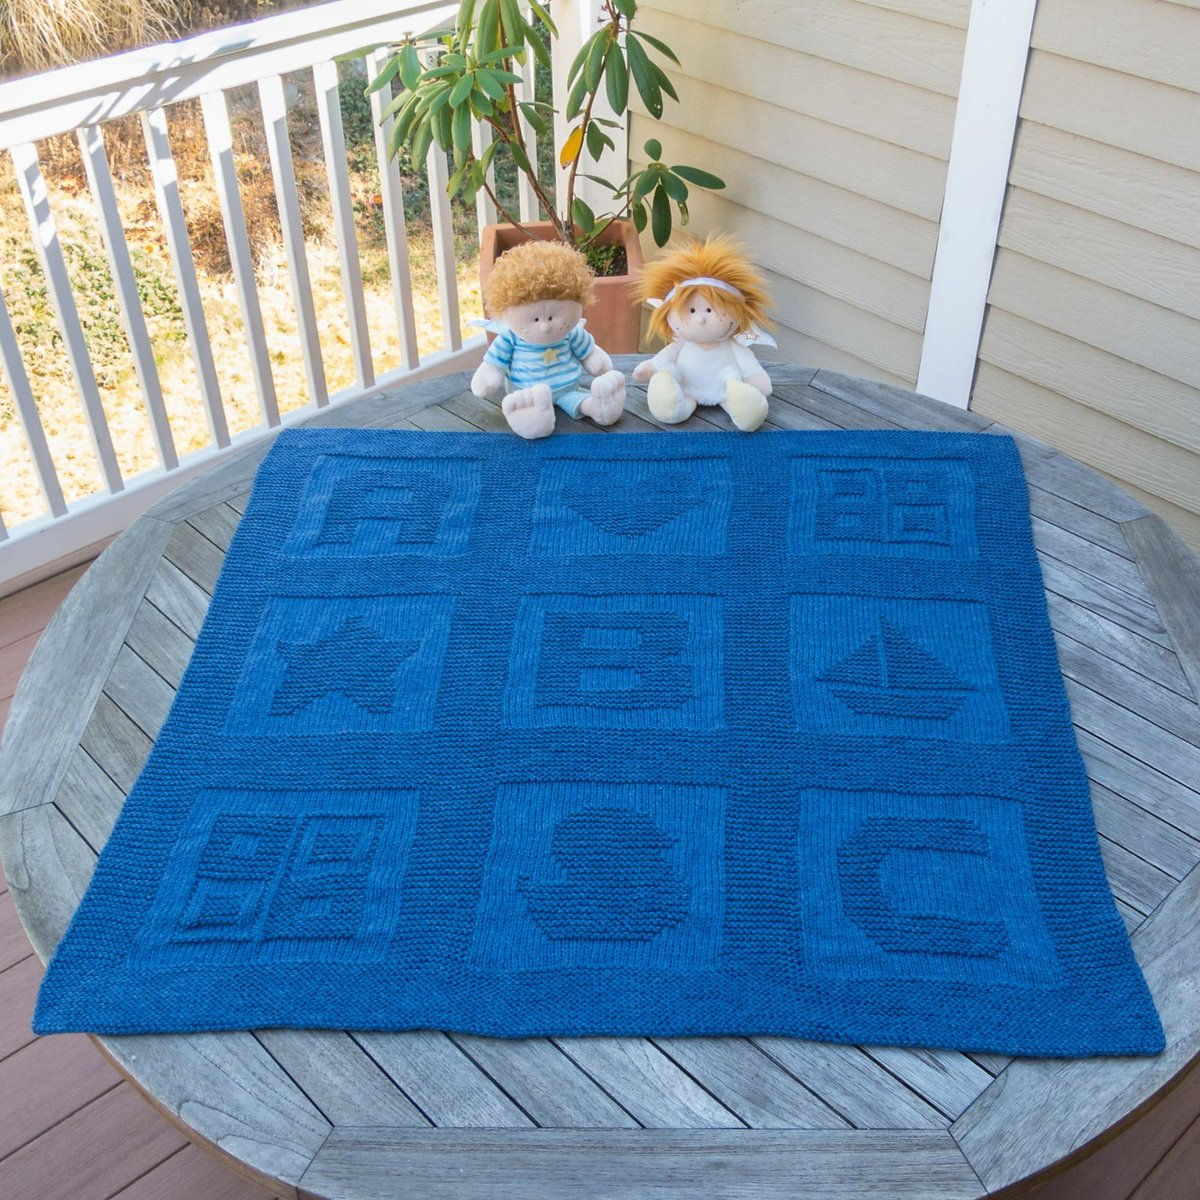 Free Easy Knitting Patterns For Baby Blankets Terry Matz On Twitter Free Knitting Pattern For Easy As Abc Ba